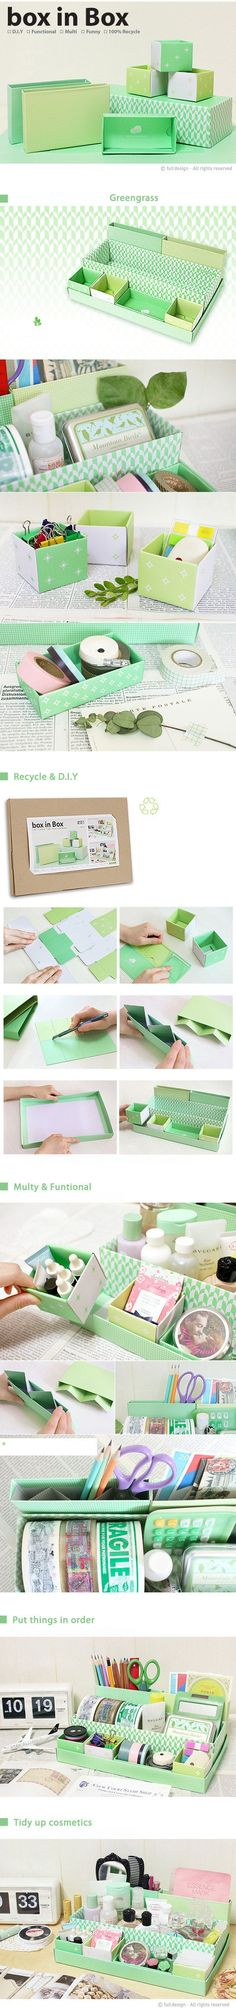 diy box Cardboard recycling, cover with material or paper to create stationary/desk organisation (just like as a kid Blue Peter style! Craft Storage, Storage Boxes, Storage Ideas, Diy Projects To Try, Craft Projects, Diy Paper, Paper Crafts, Handmade Paper Boxes, Diy Organisation